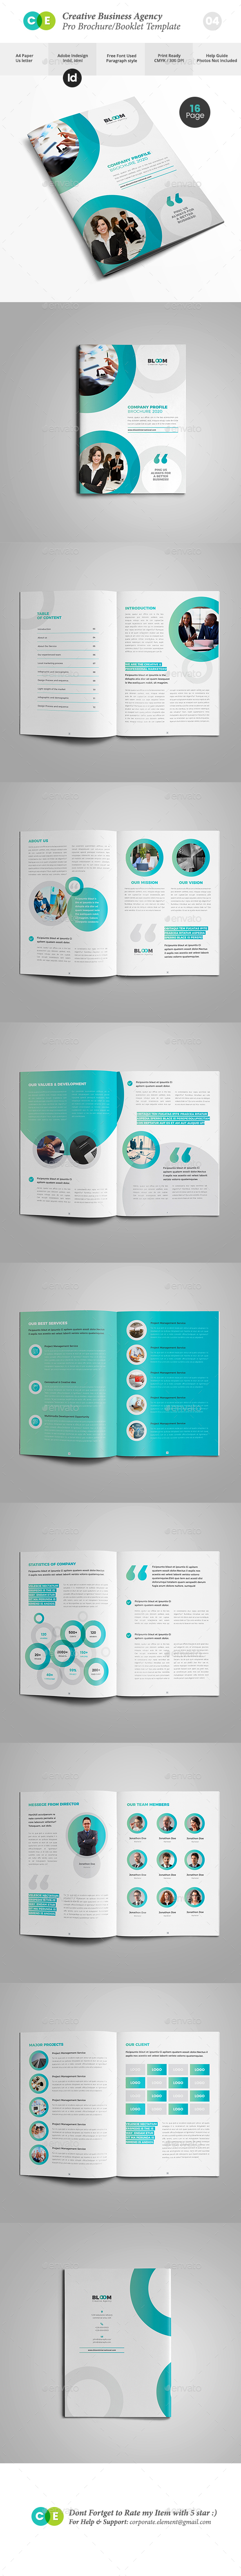 Business Creative Agency Brochure V04 - Brochures Print Templates